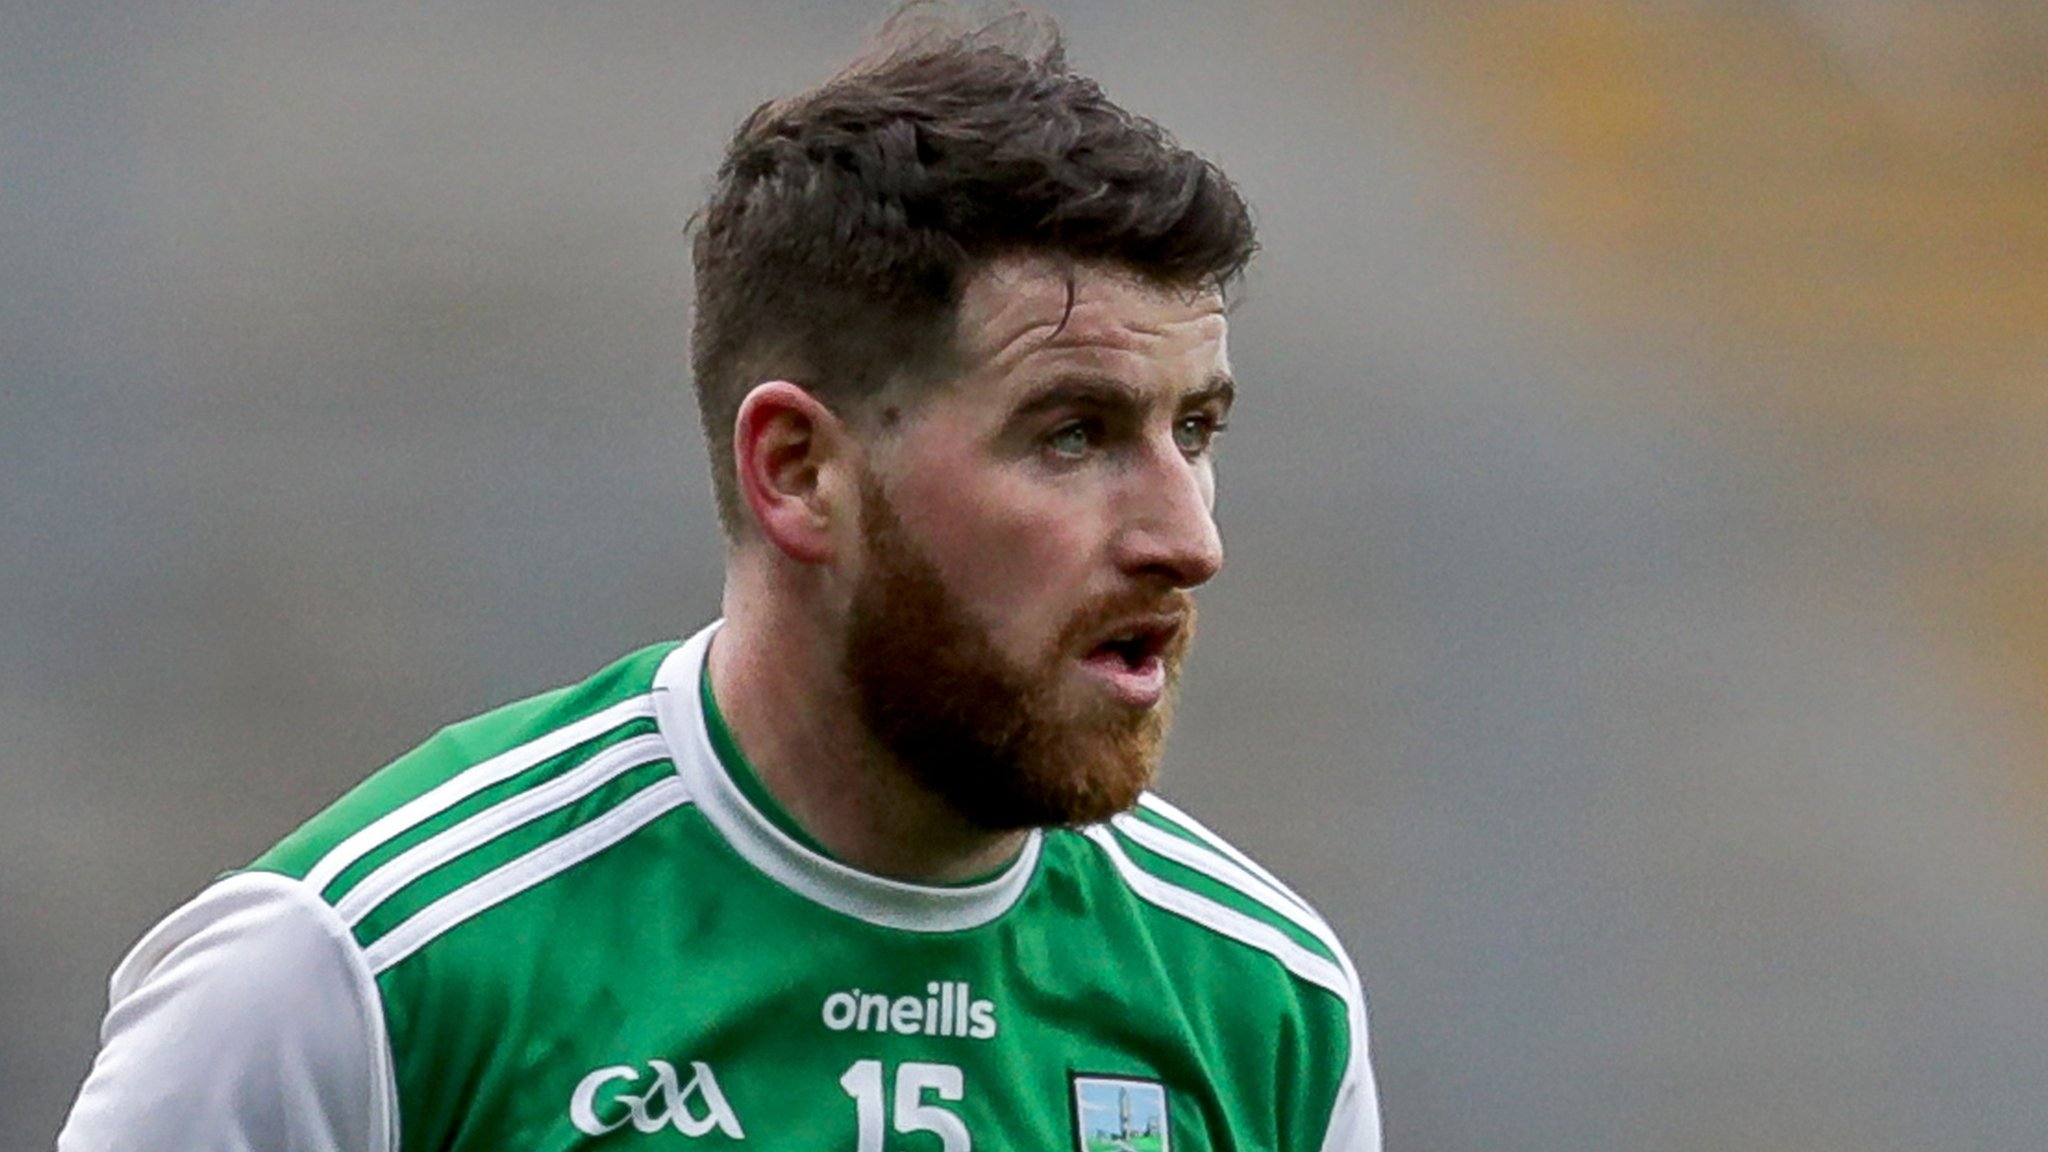 Ulster SFC final: Quigley set to start for Ernemen